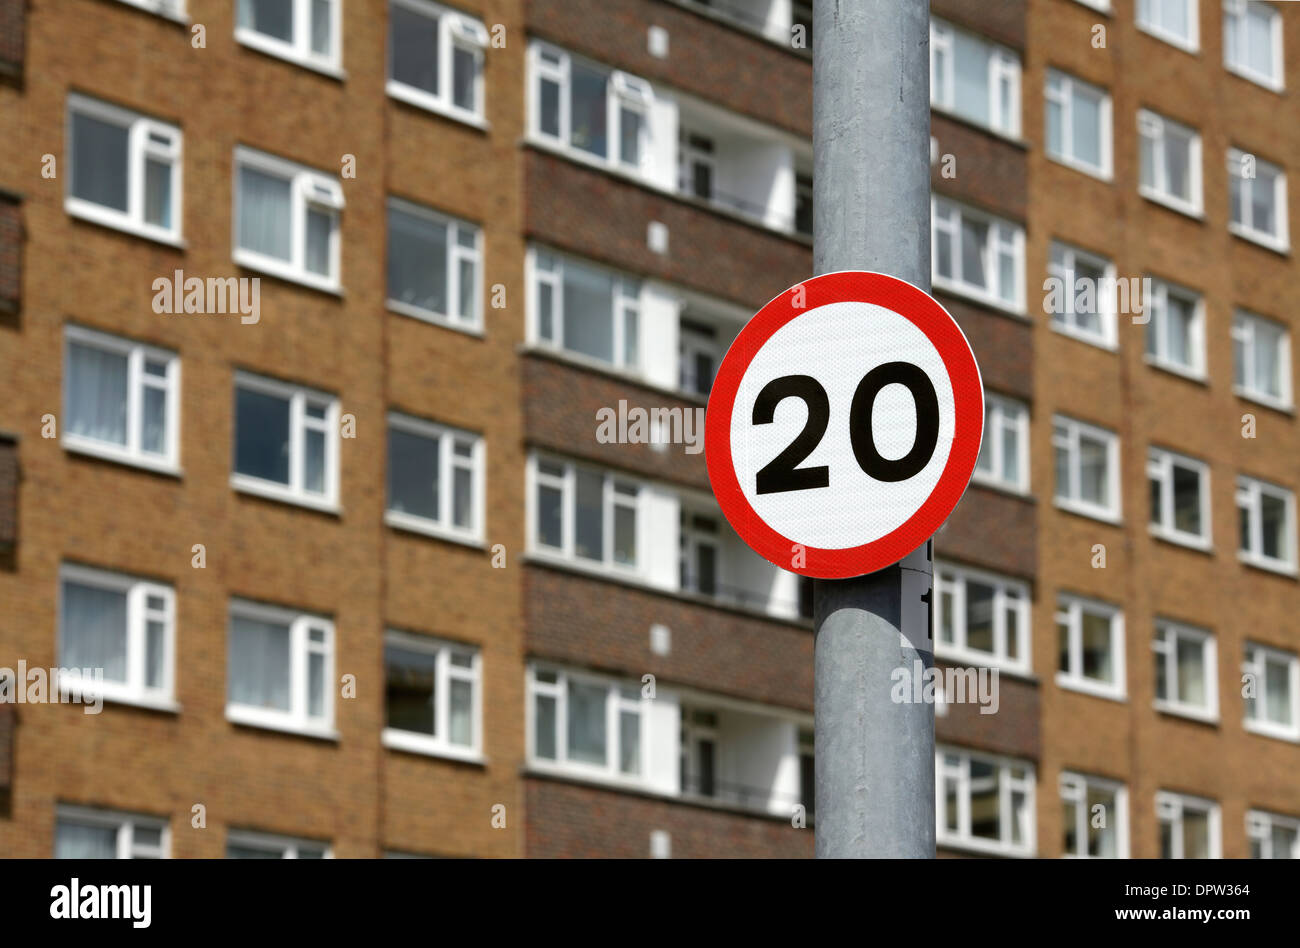 Twenty miles per hour speed limit sign in a residential, built up area, Brighton and Hove, East Sussex. - Stock Image